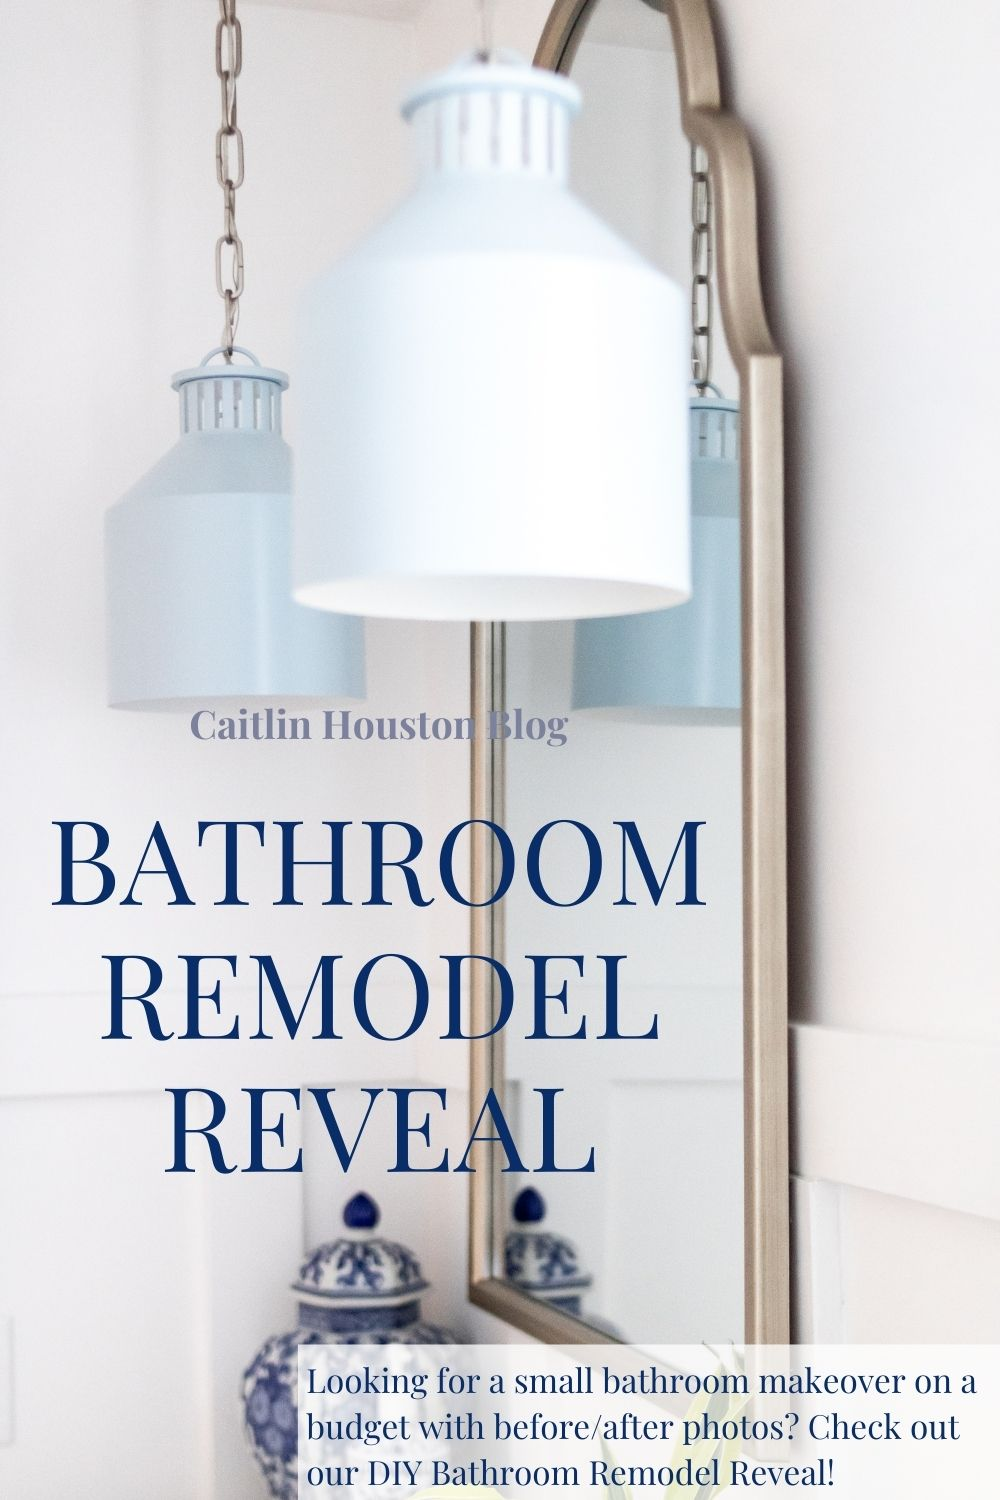 Bathroom Remodel Reveal - Looking for a small bathroom makeover on a budget with before/after photos? Check out our DIY Bathroom Remodel Reveal!